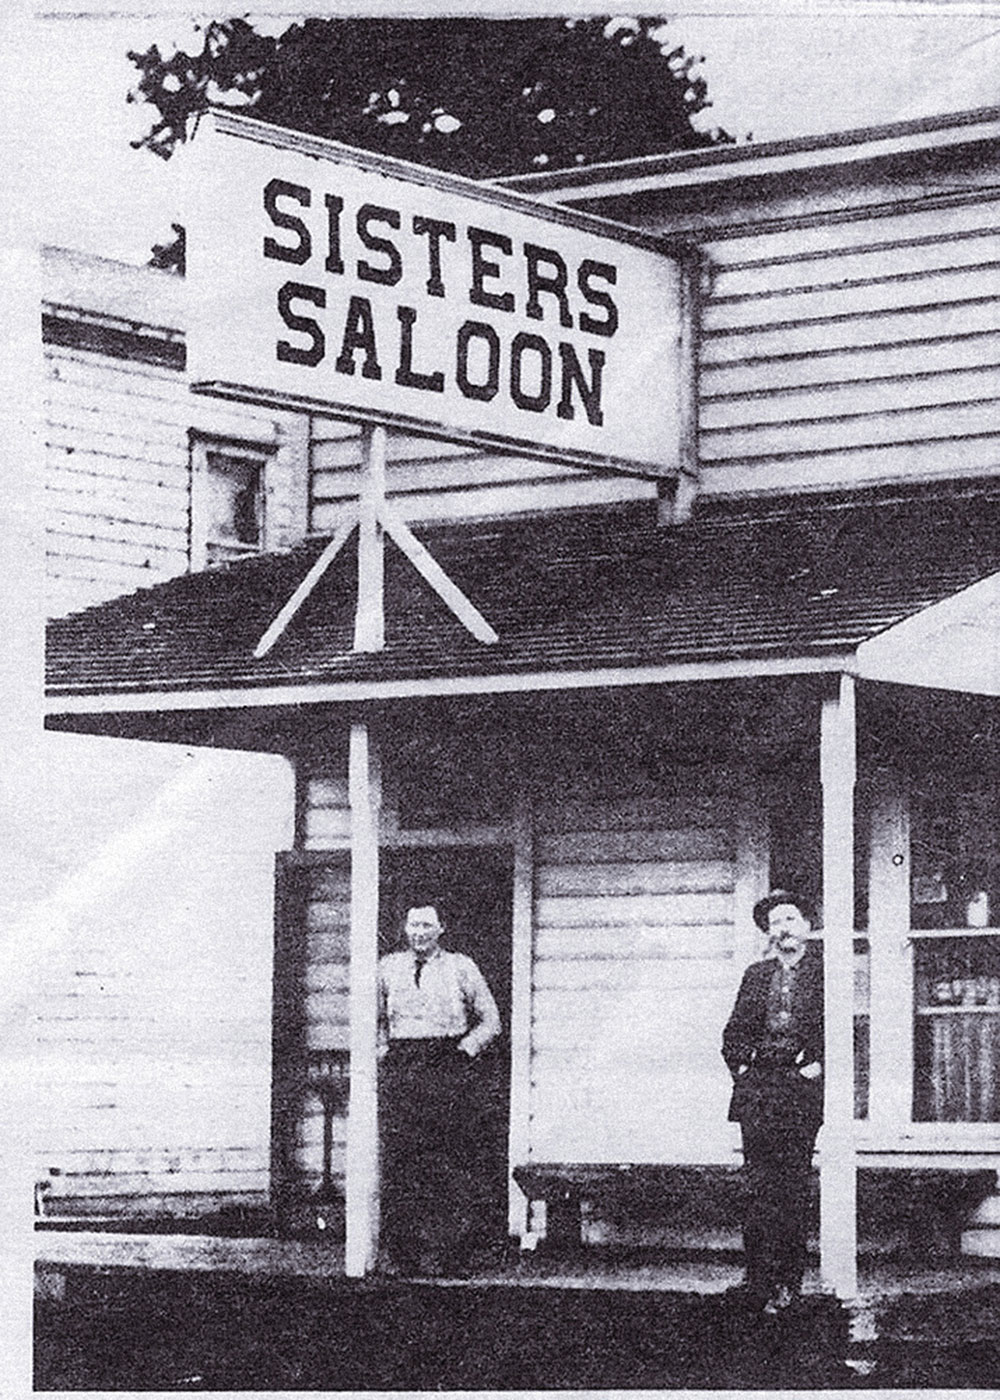 sisters saloon sisters oregon true west magazine